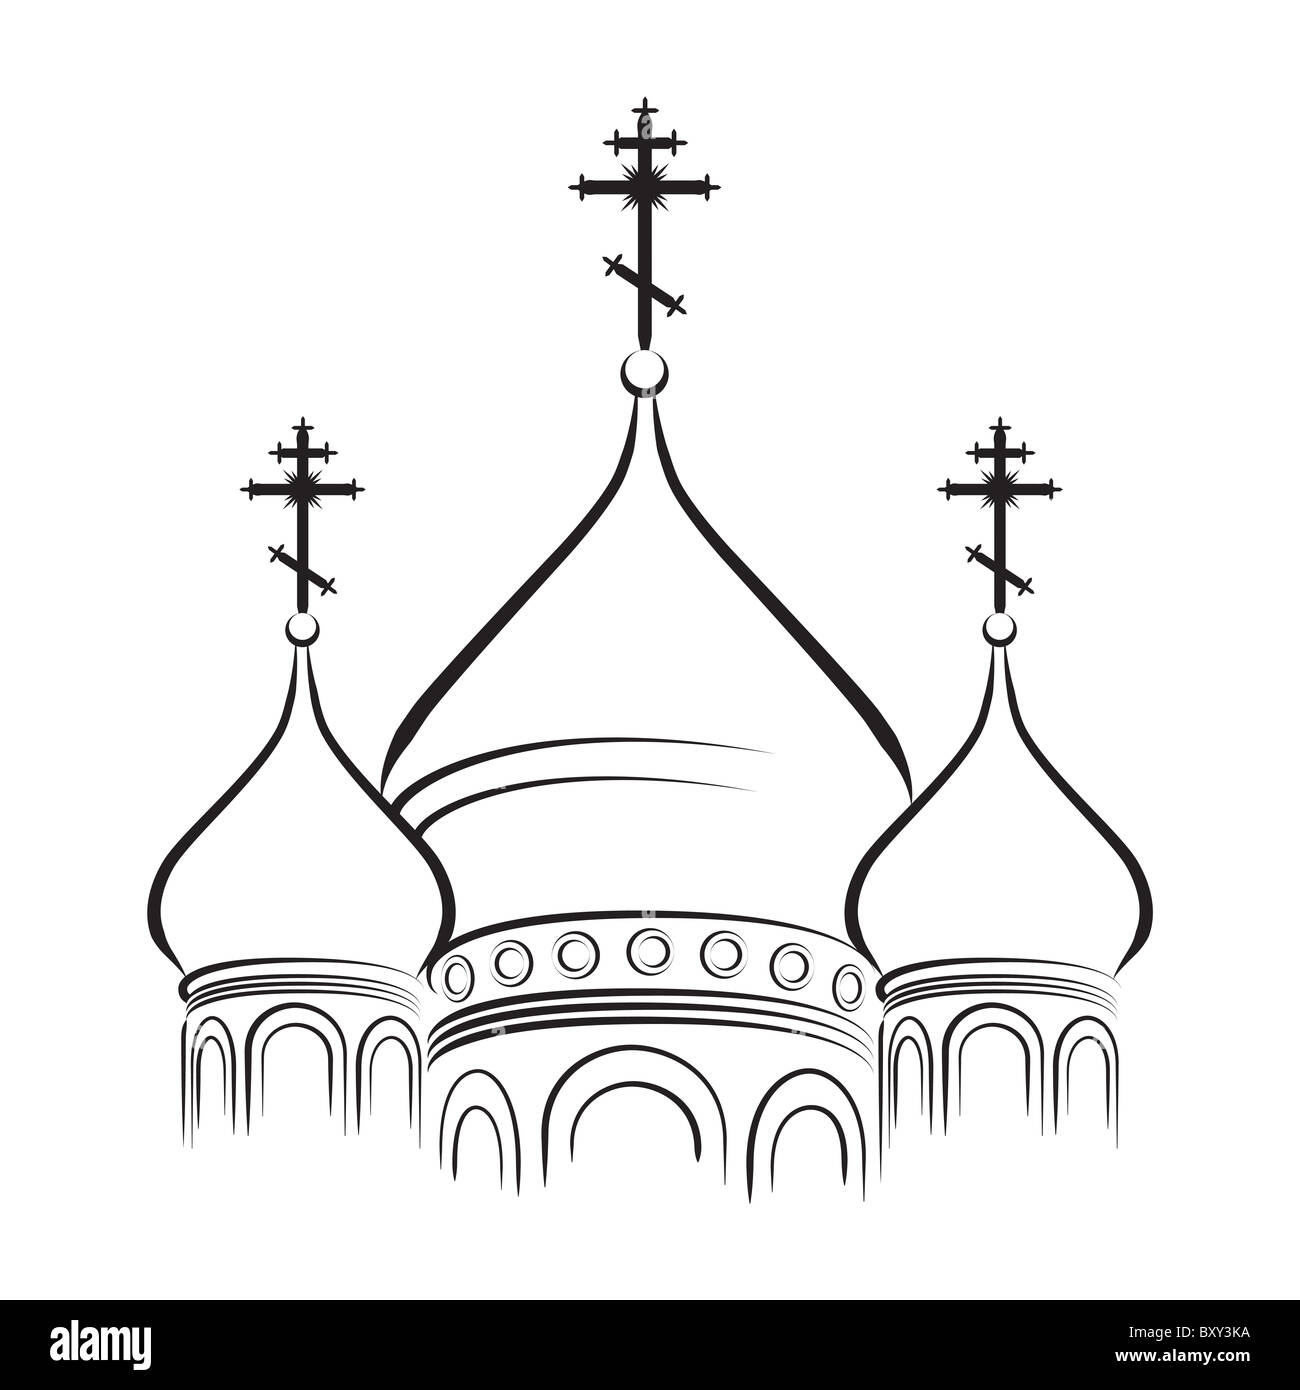 The Cathedral Cupola - Stock Image